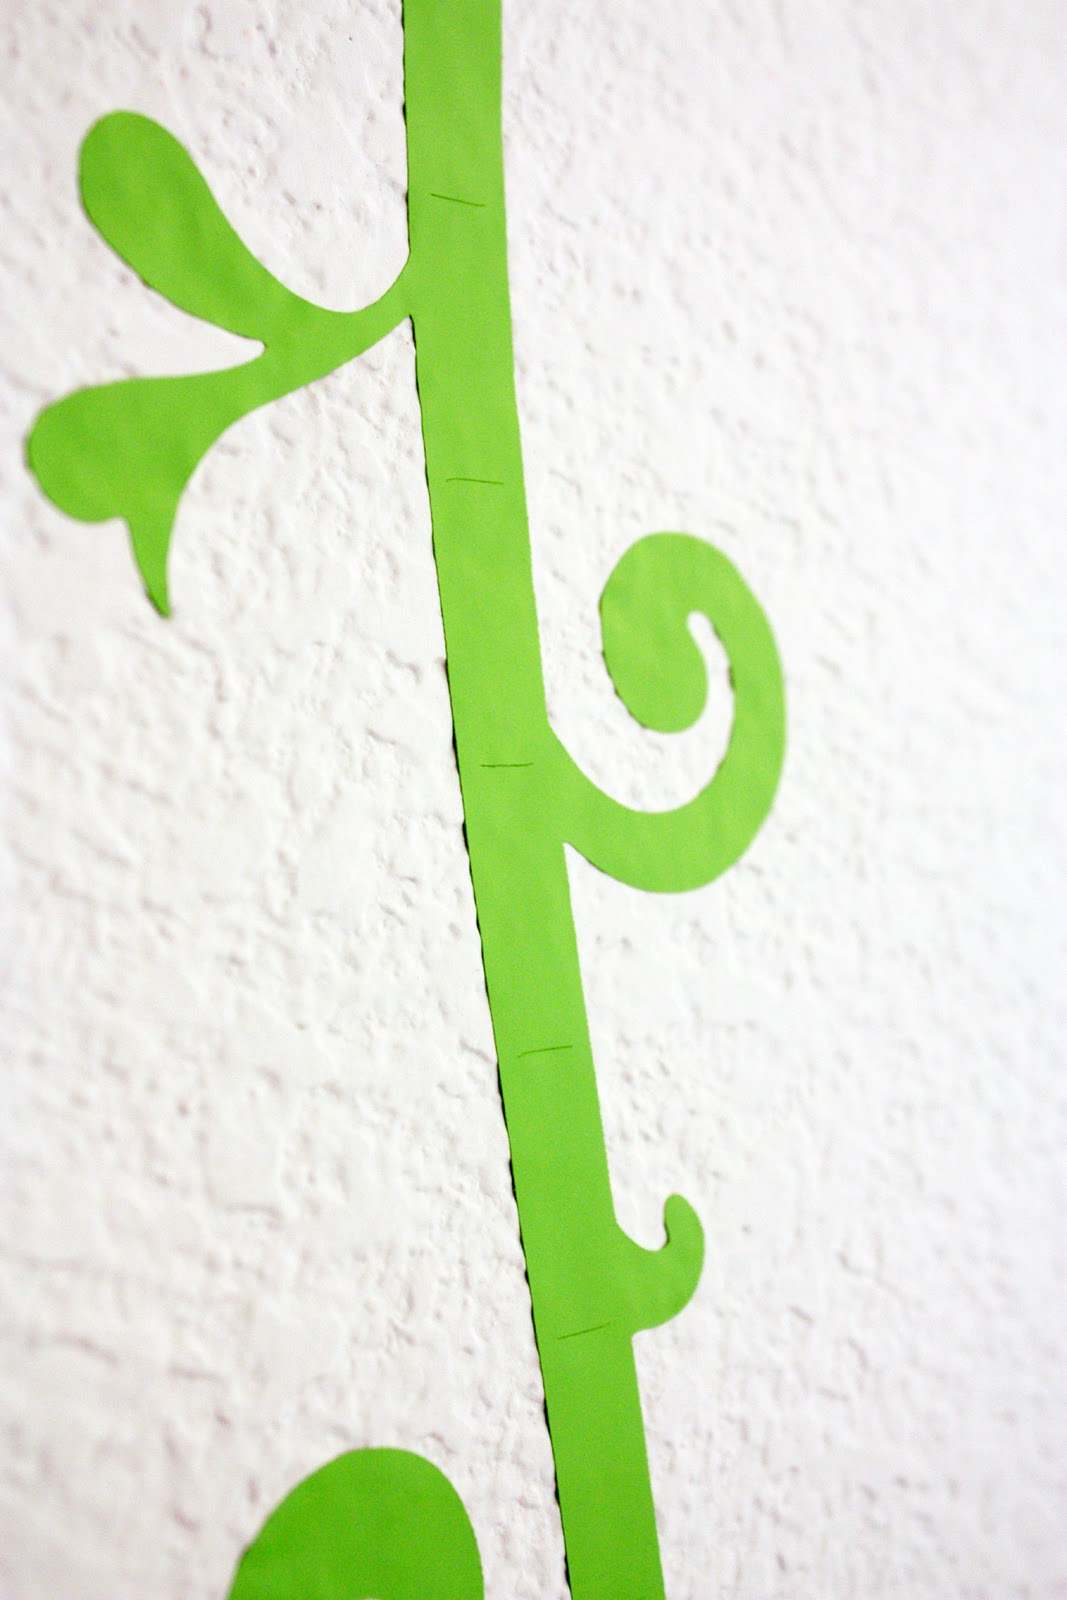 Flower Stem Template To the flower stem to mark